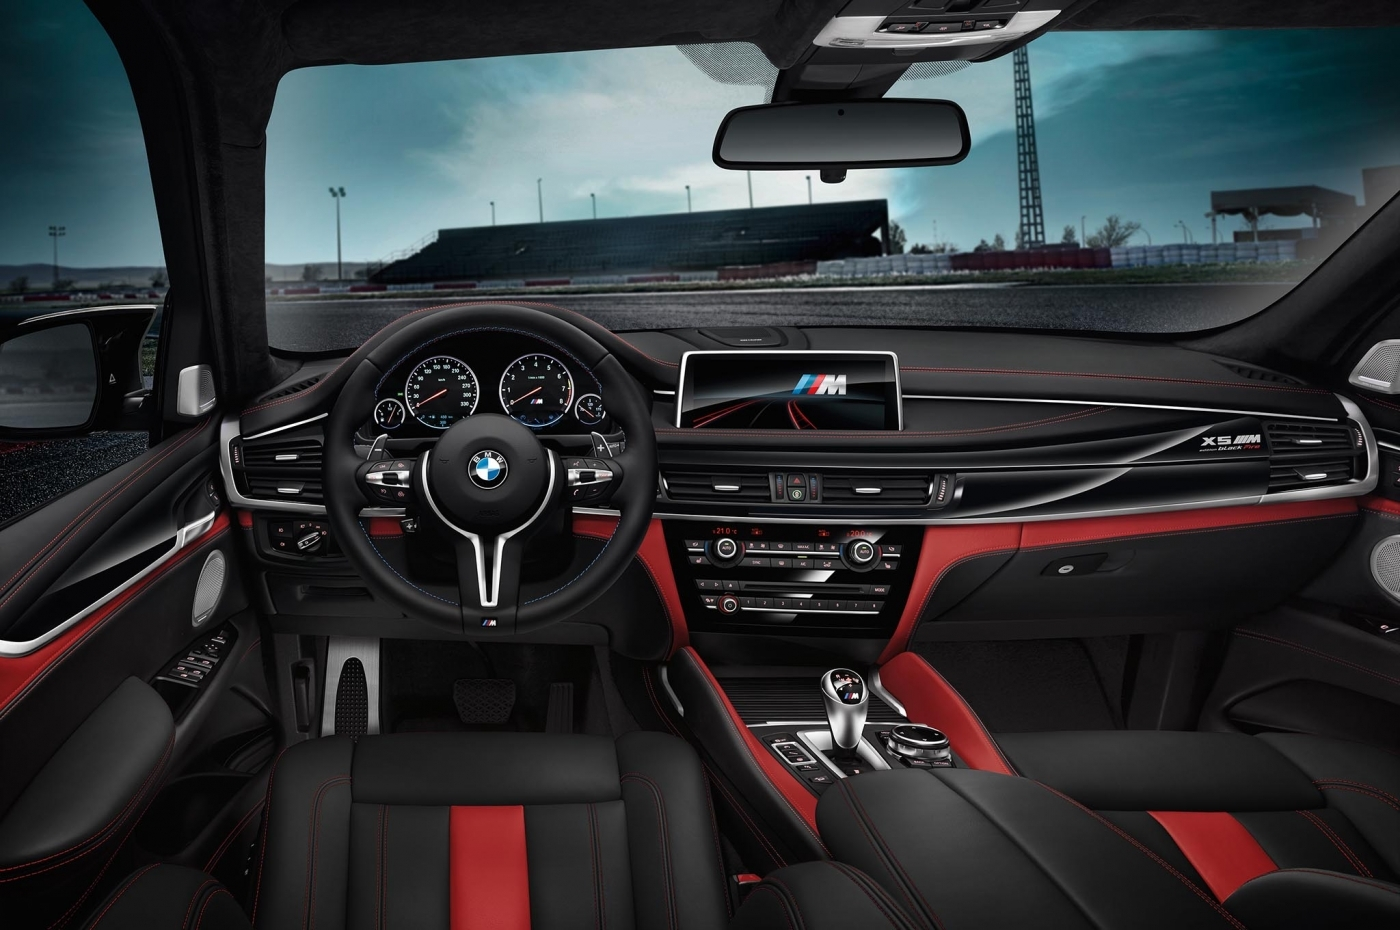 The Black Fire Edition Of The Bmw X5 M And Bmw X6 Interiors 1400 930 S C1